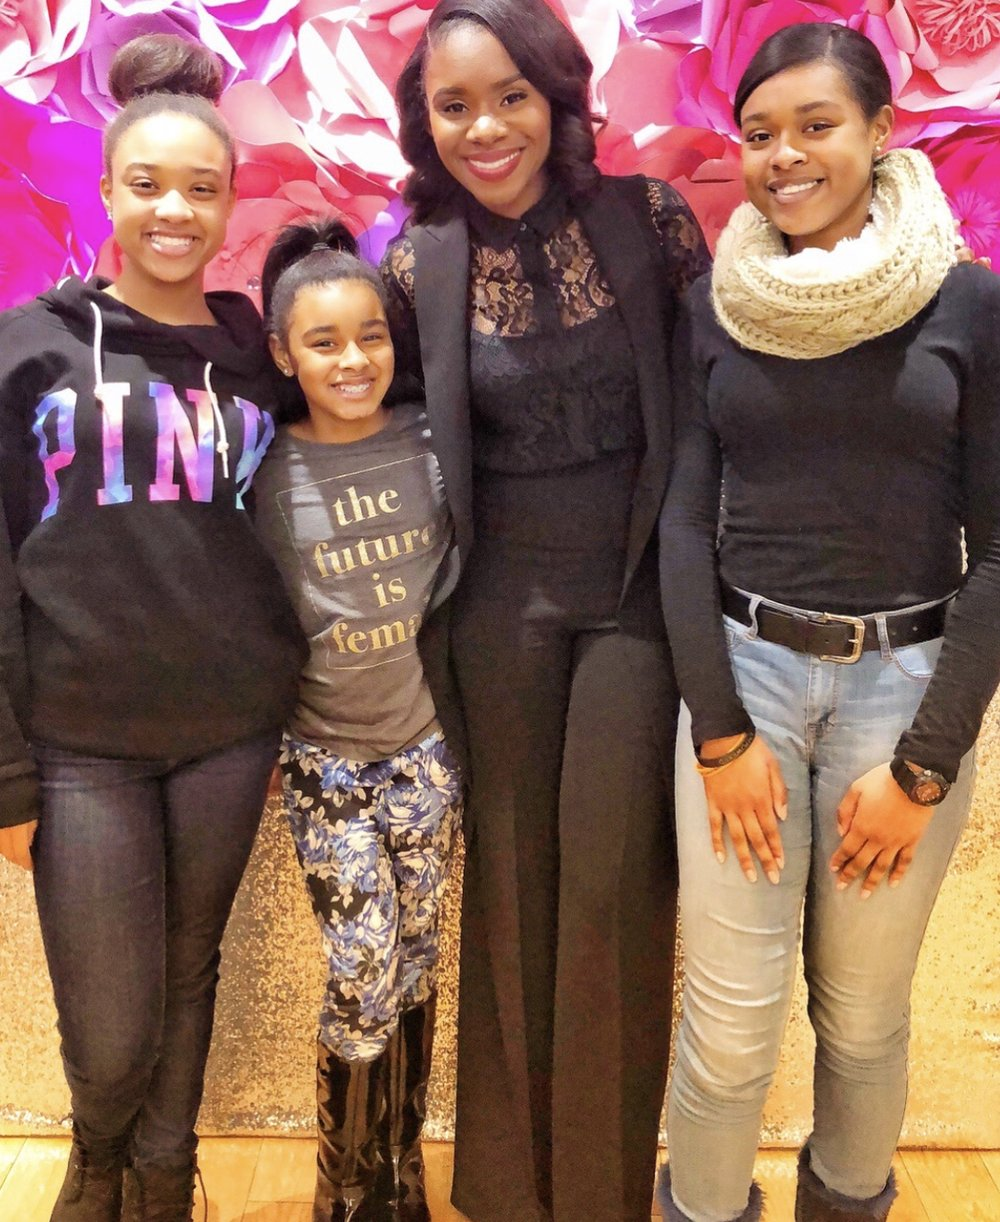 Kareem Gayle of Richemont with a few beautiful mentees